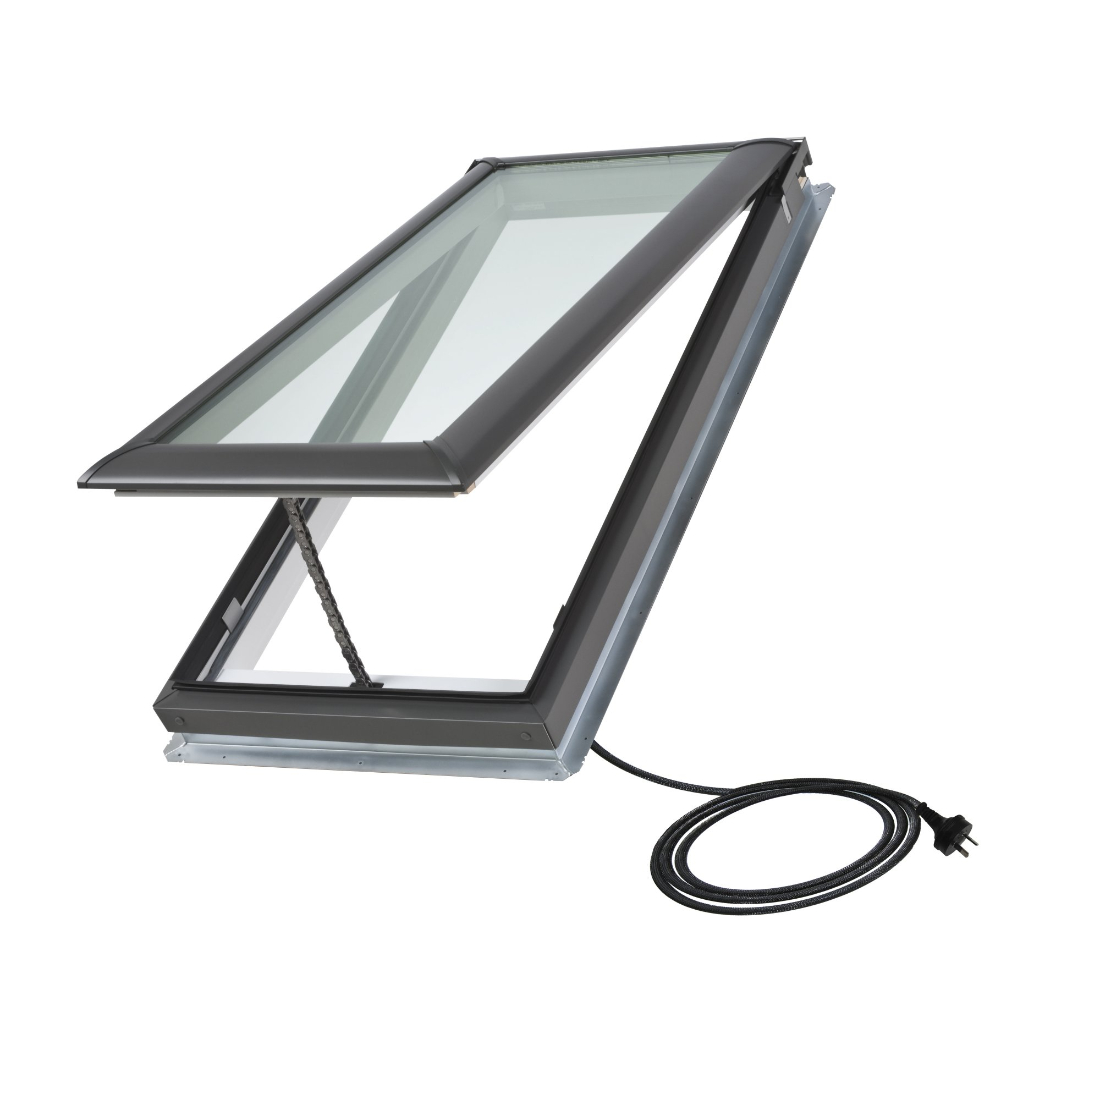 Electric Opening Skylight 780 x 1180mm